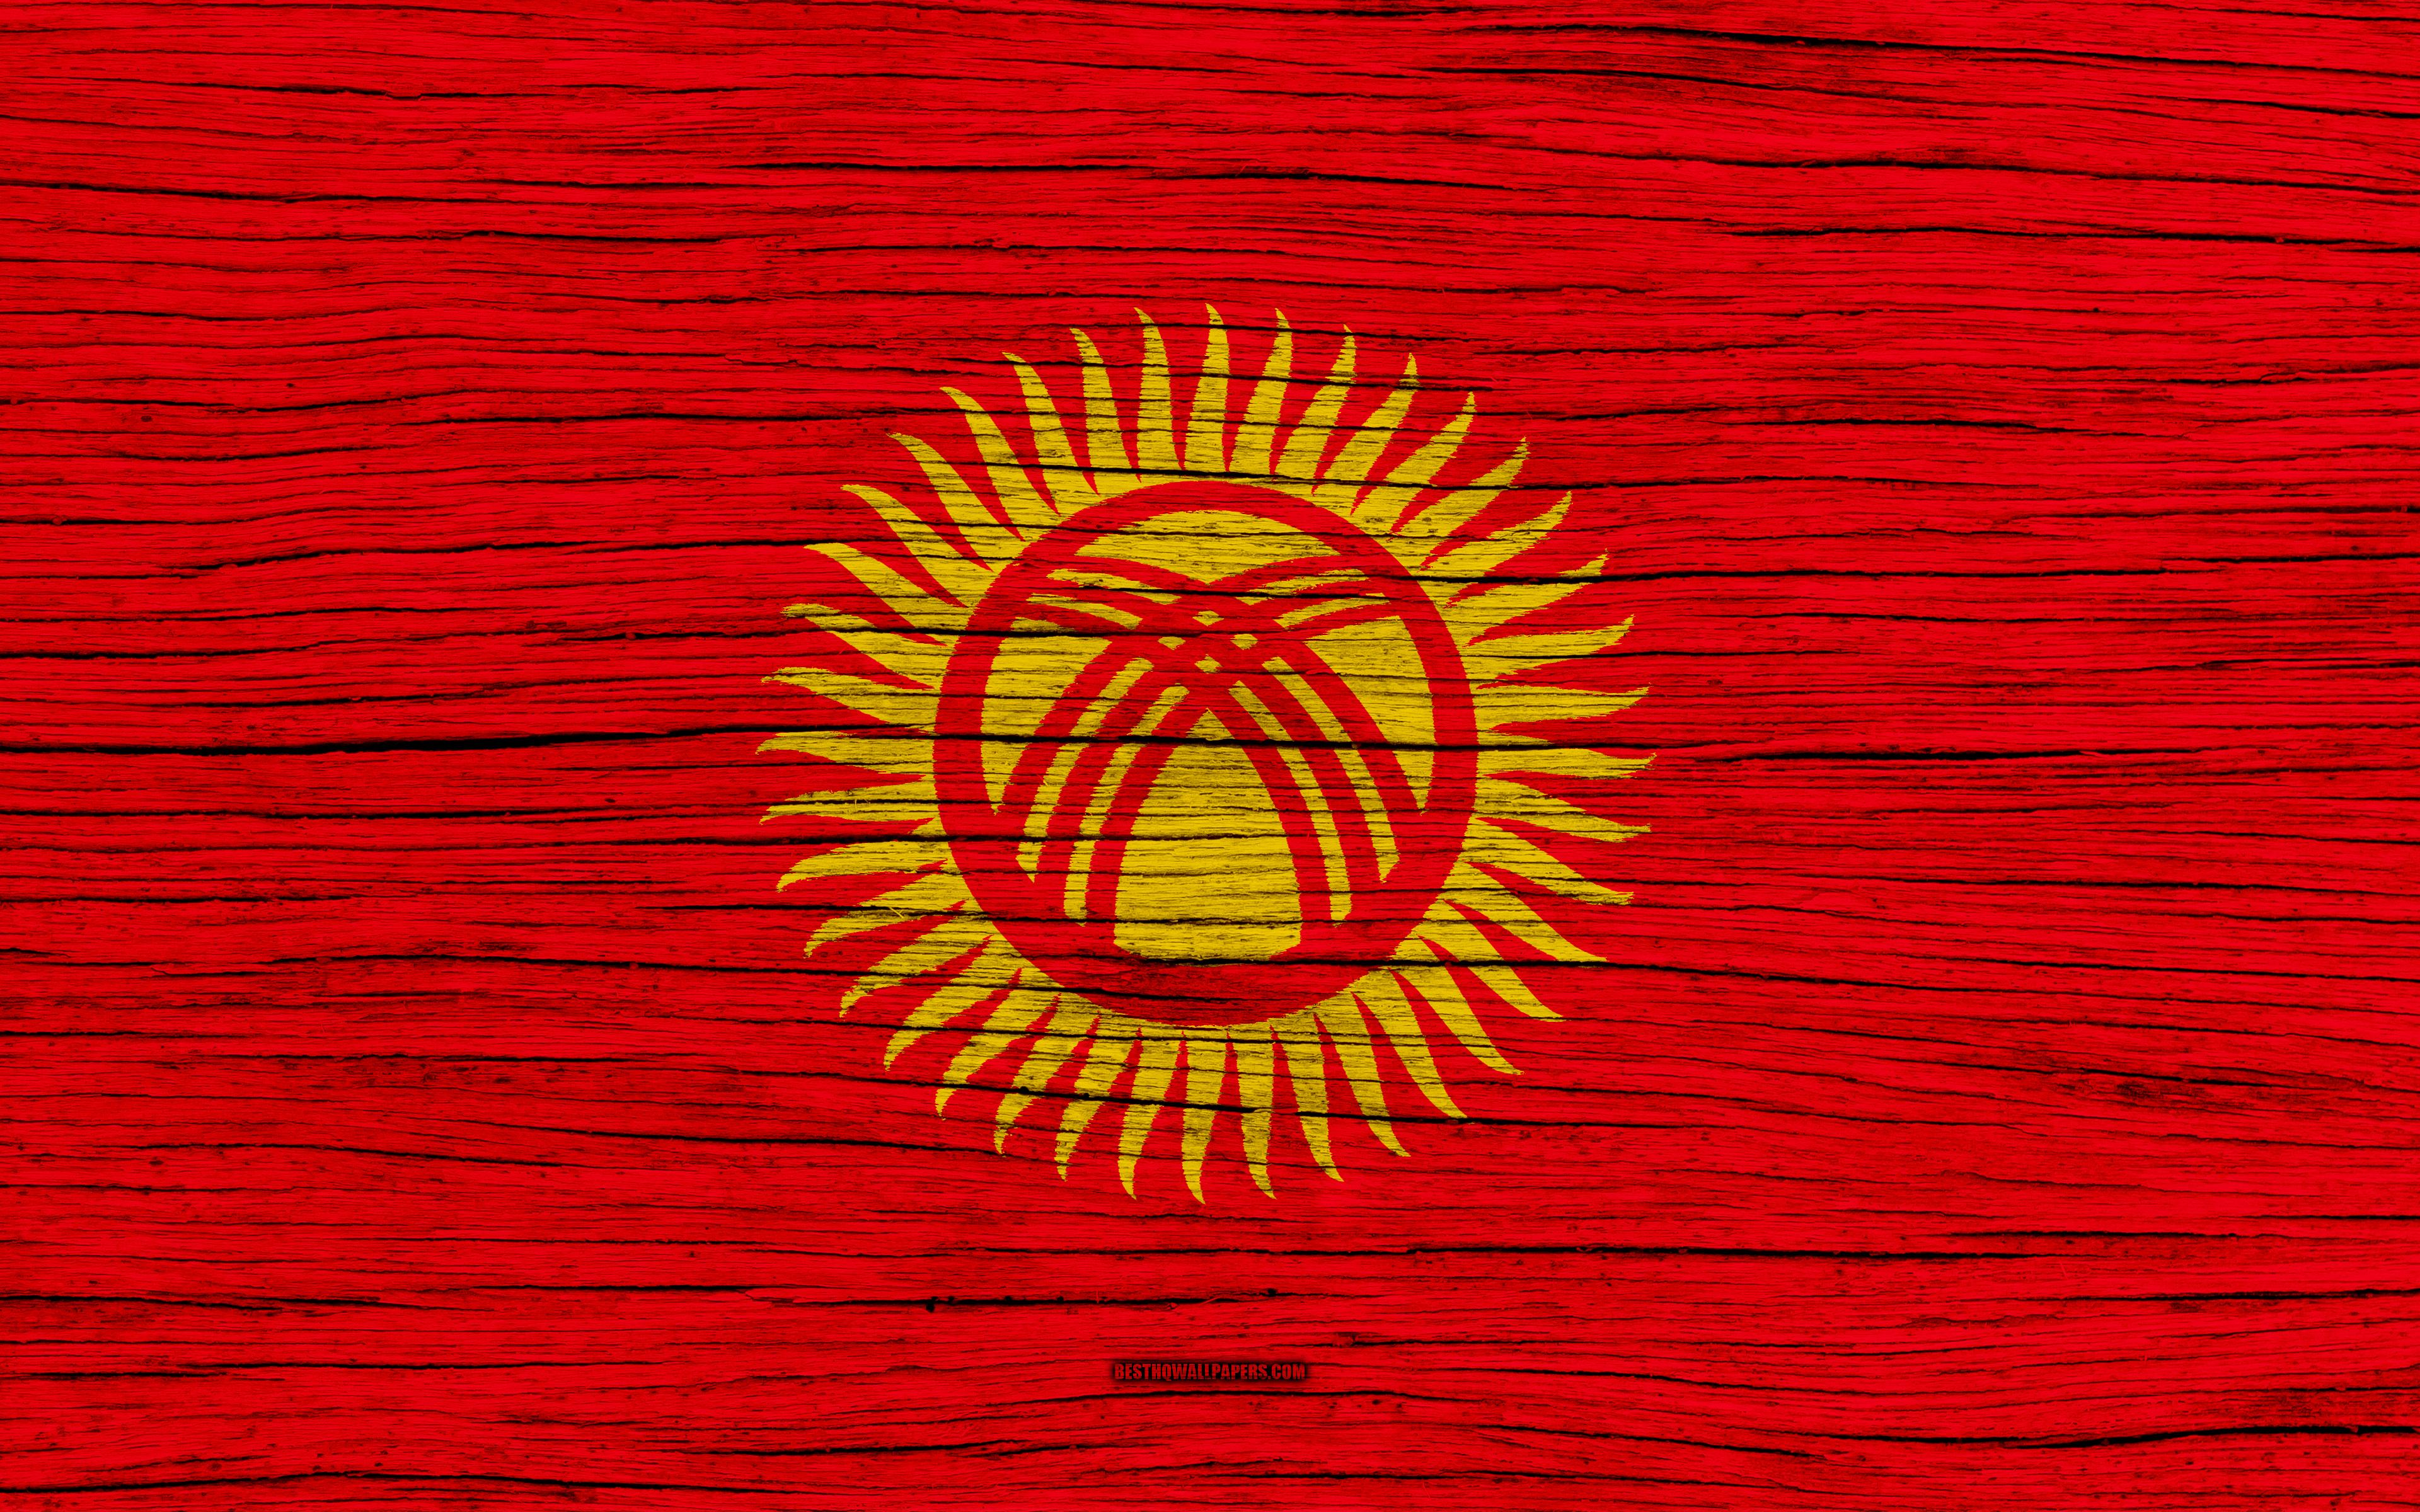 Download wallpapers Flag of Kyrgyzstan, 4k, Asia, wooden texture